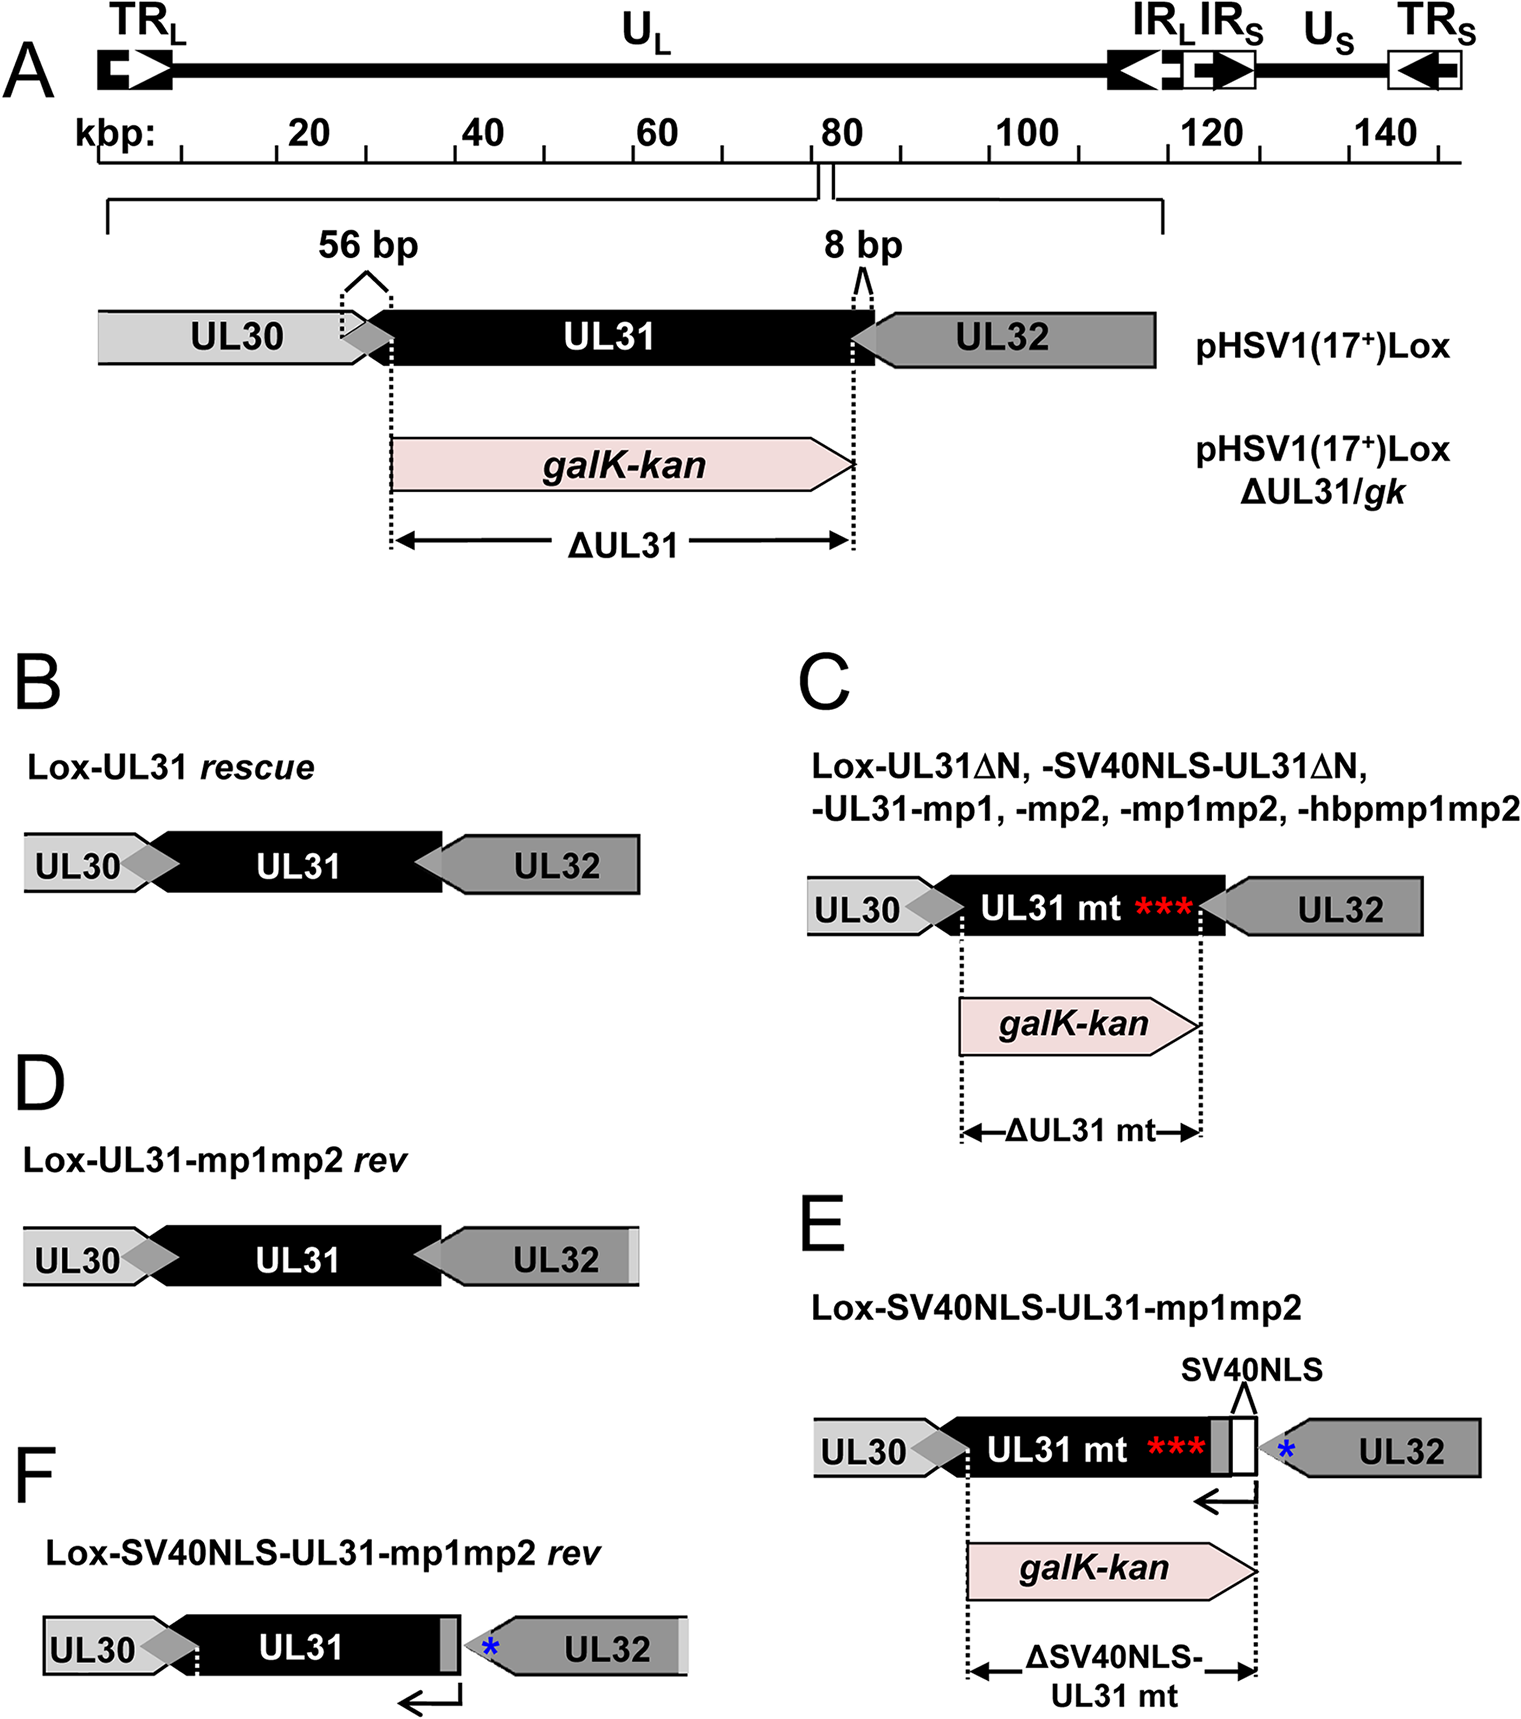 Functional analysis of the N-terminal domain of pUL31.